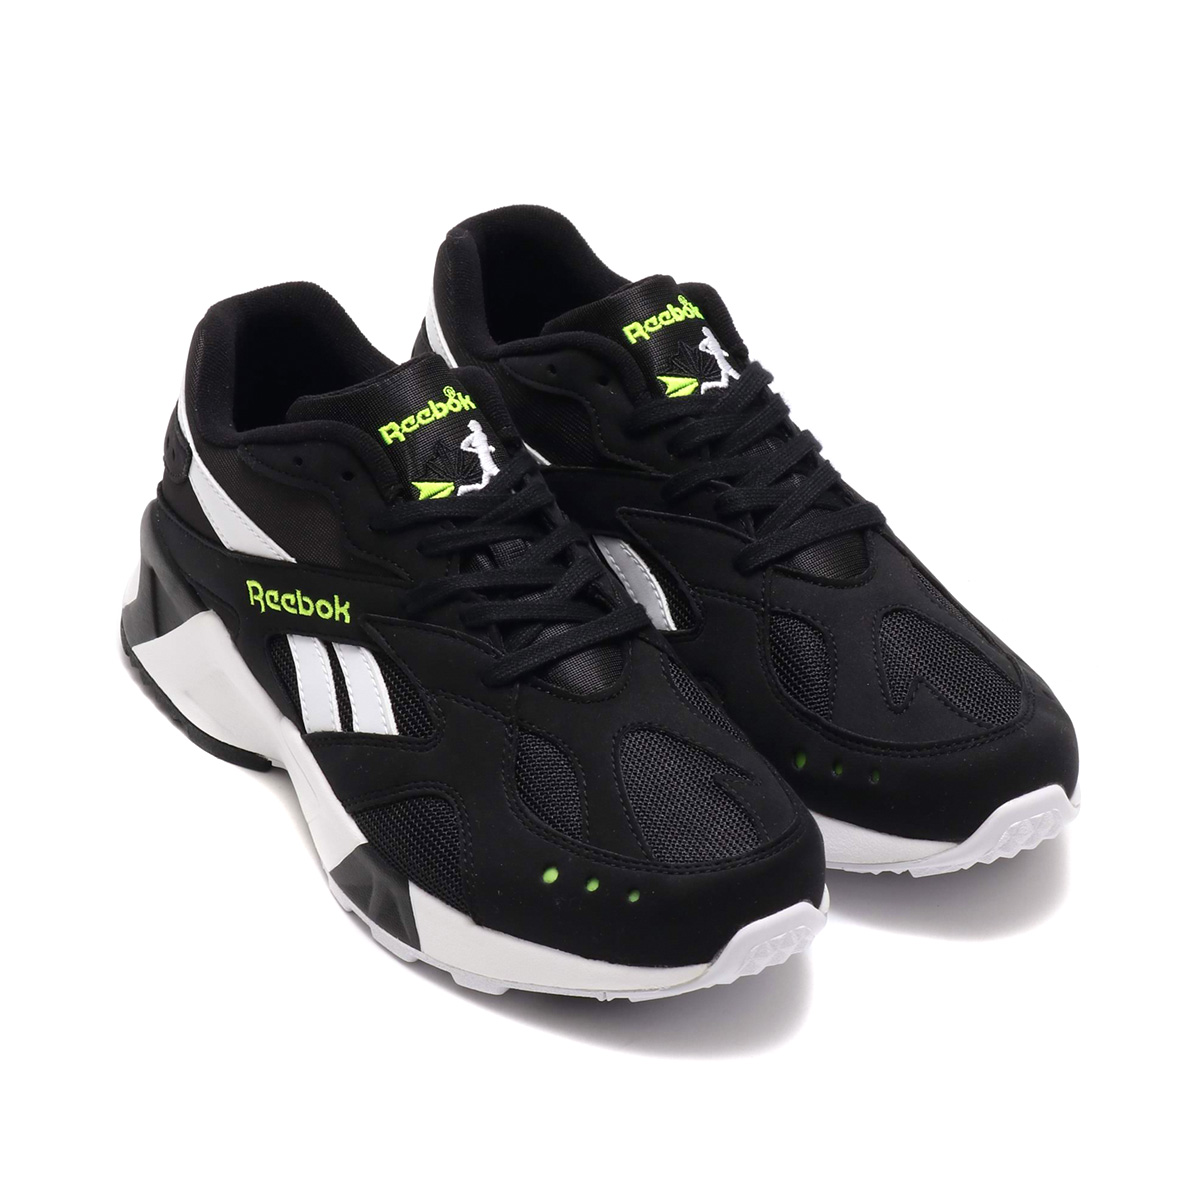 6ac29d2bac35 Reebok CLASSIC (Reebok classical music) sneakers. AZTREK which came up as running  shoes in 1992. The model that the evaluation from a particularly serious ...